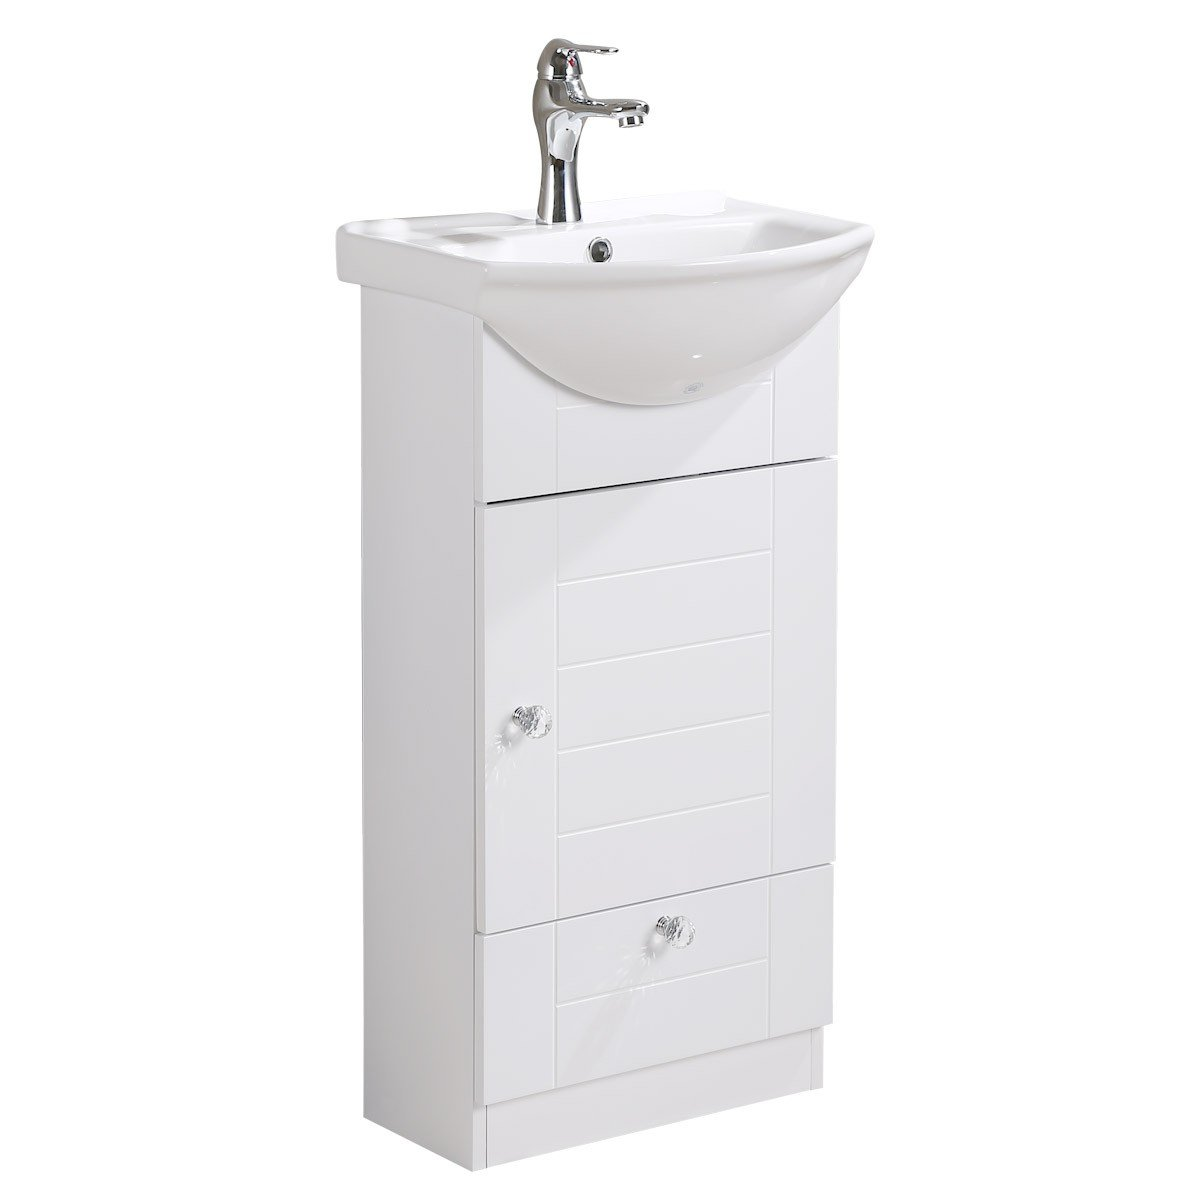 Bathroom Sink Vanity Cabinet: Amazon.com